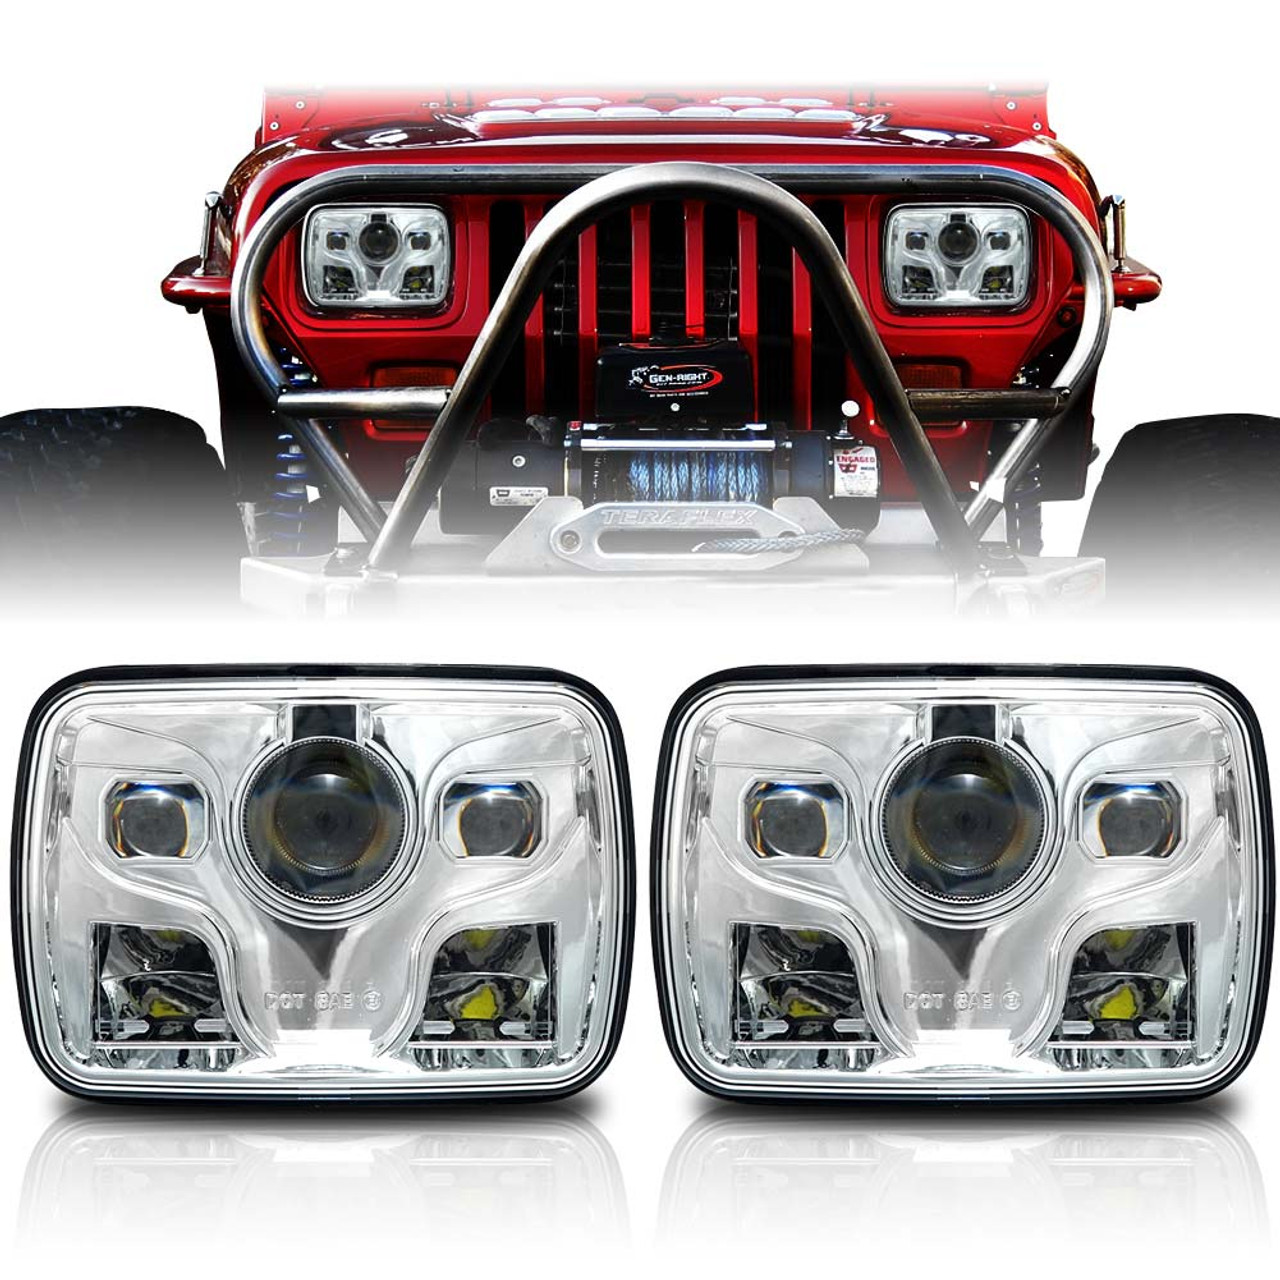 Jeep Yj Headlights - Wiring Diagram Meta Jeep Wrangler Headlight Wiring Diagram on jeep wrangler alternator wiring diagram, jeep wrangler headlight fuse, jeep headlight switch wiring diagram, jeep wrangler headlight switch,